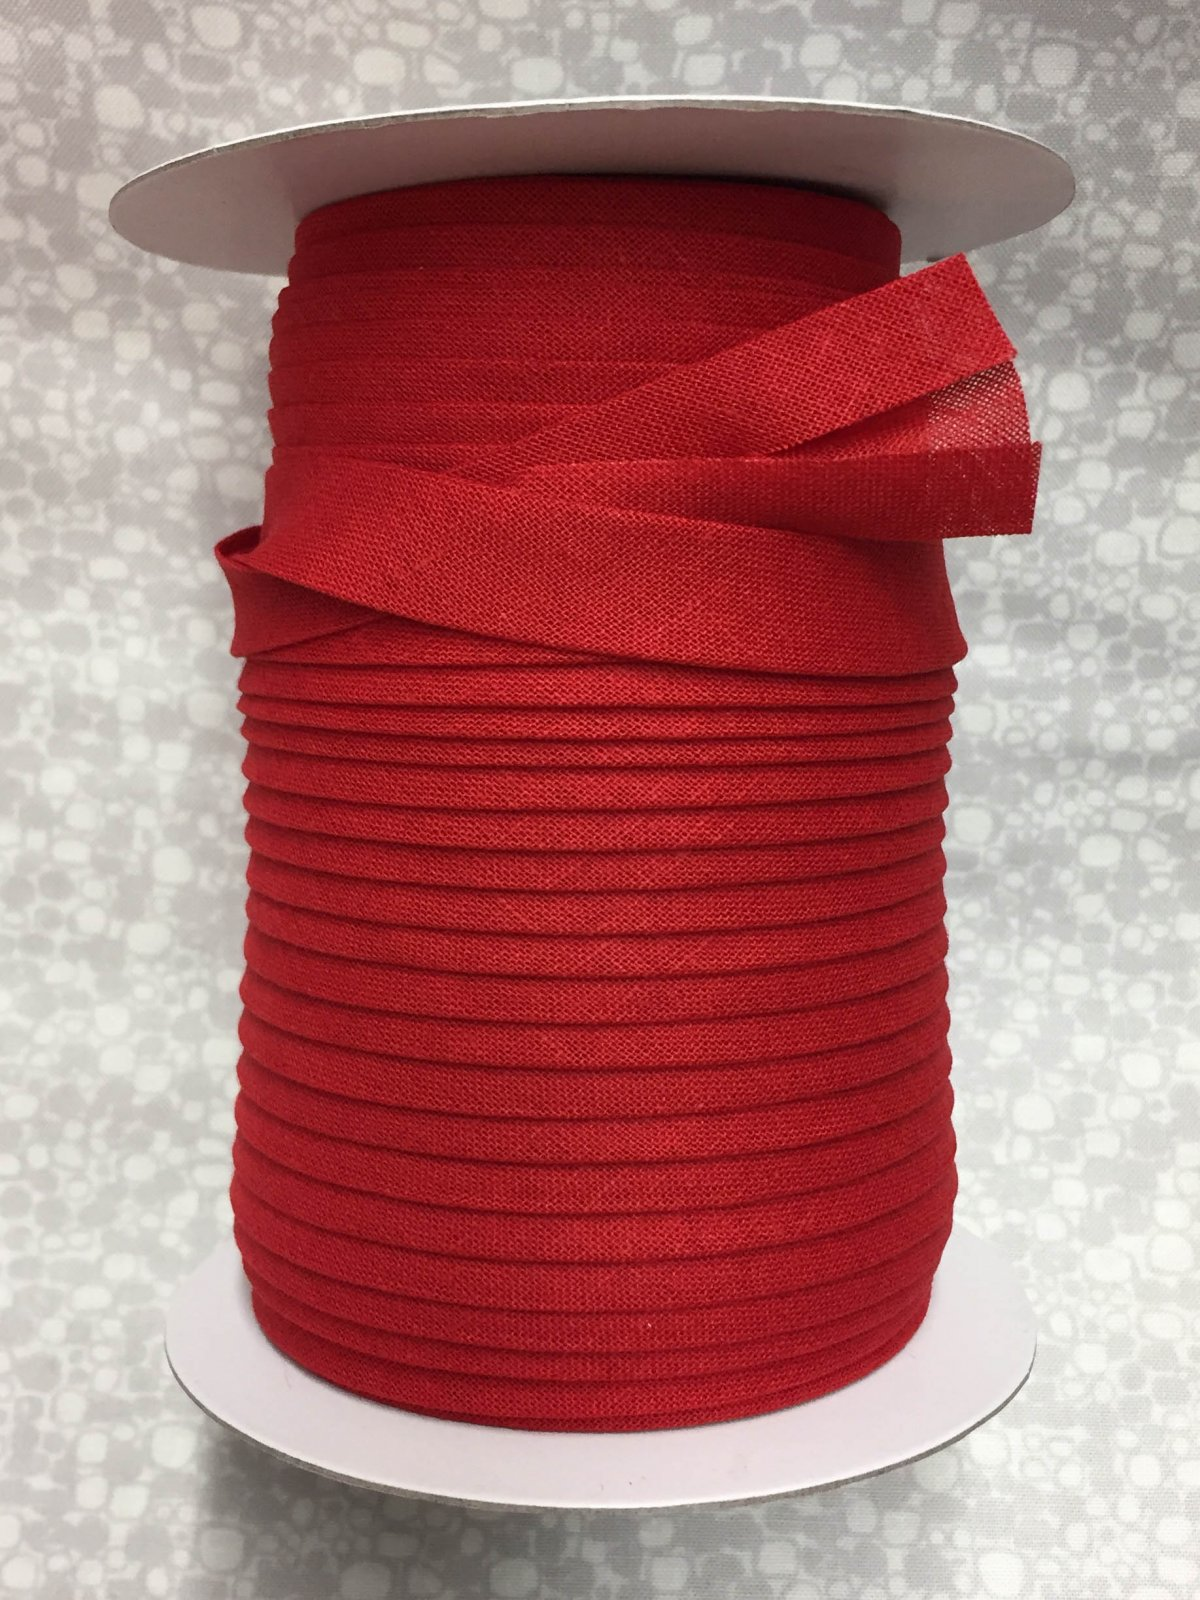 1/2 Finish Double Fold Economy Bias Binding, 10yd -Red